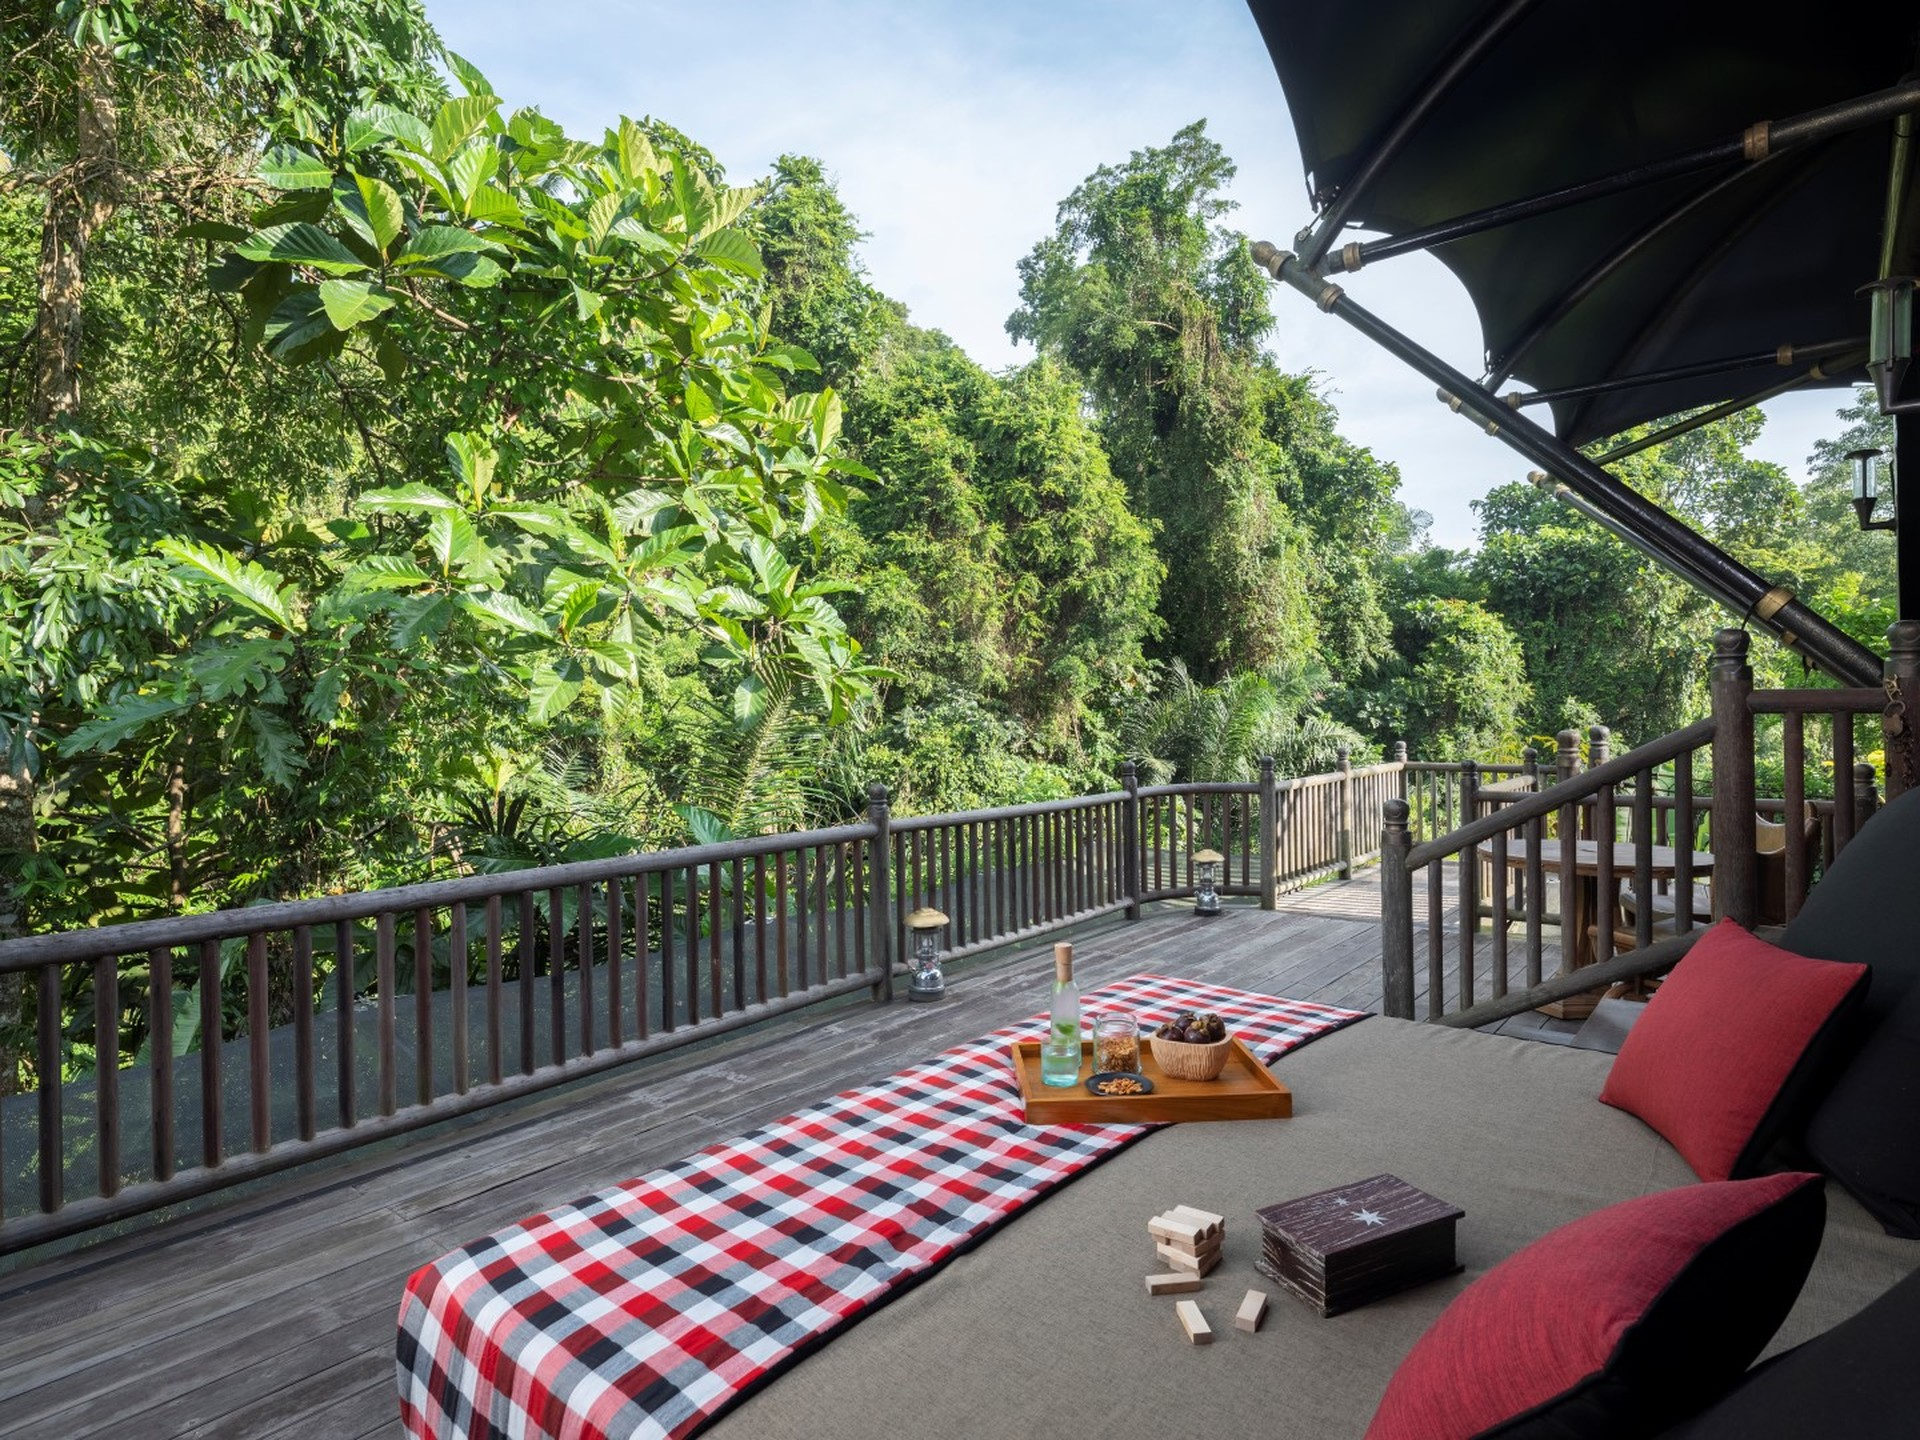 ubud-accommodation-River Tent-Deck-01 (Large).jpg